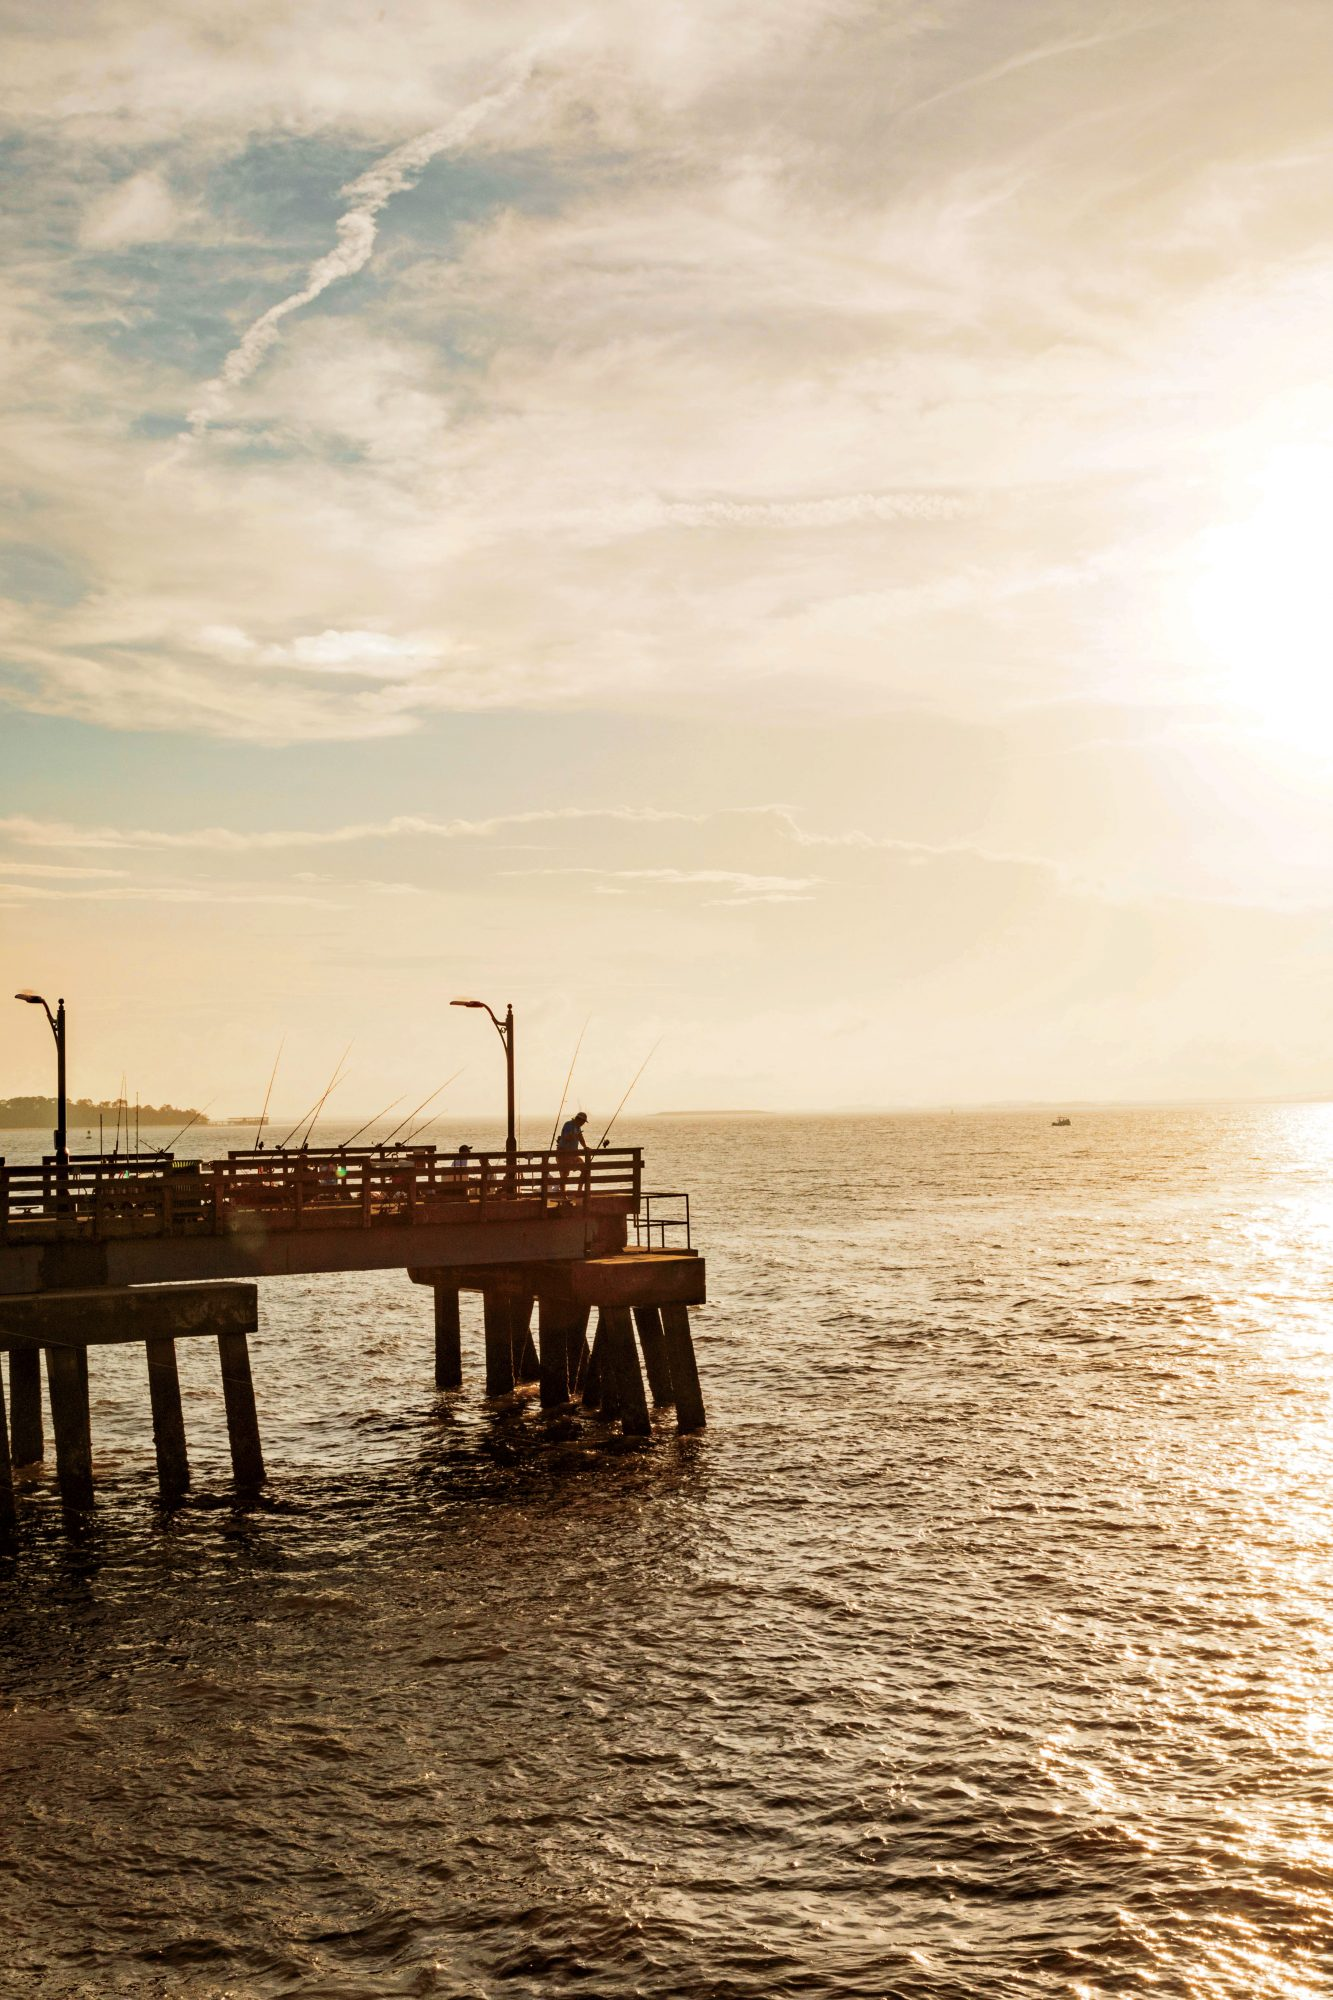 The Pier in Downtown St. Simons Island